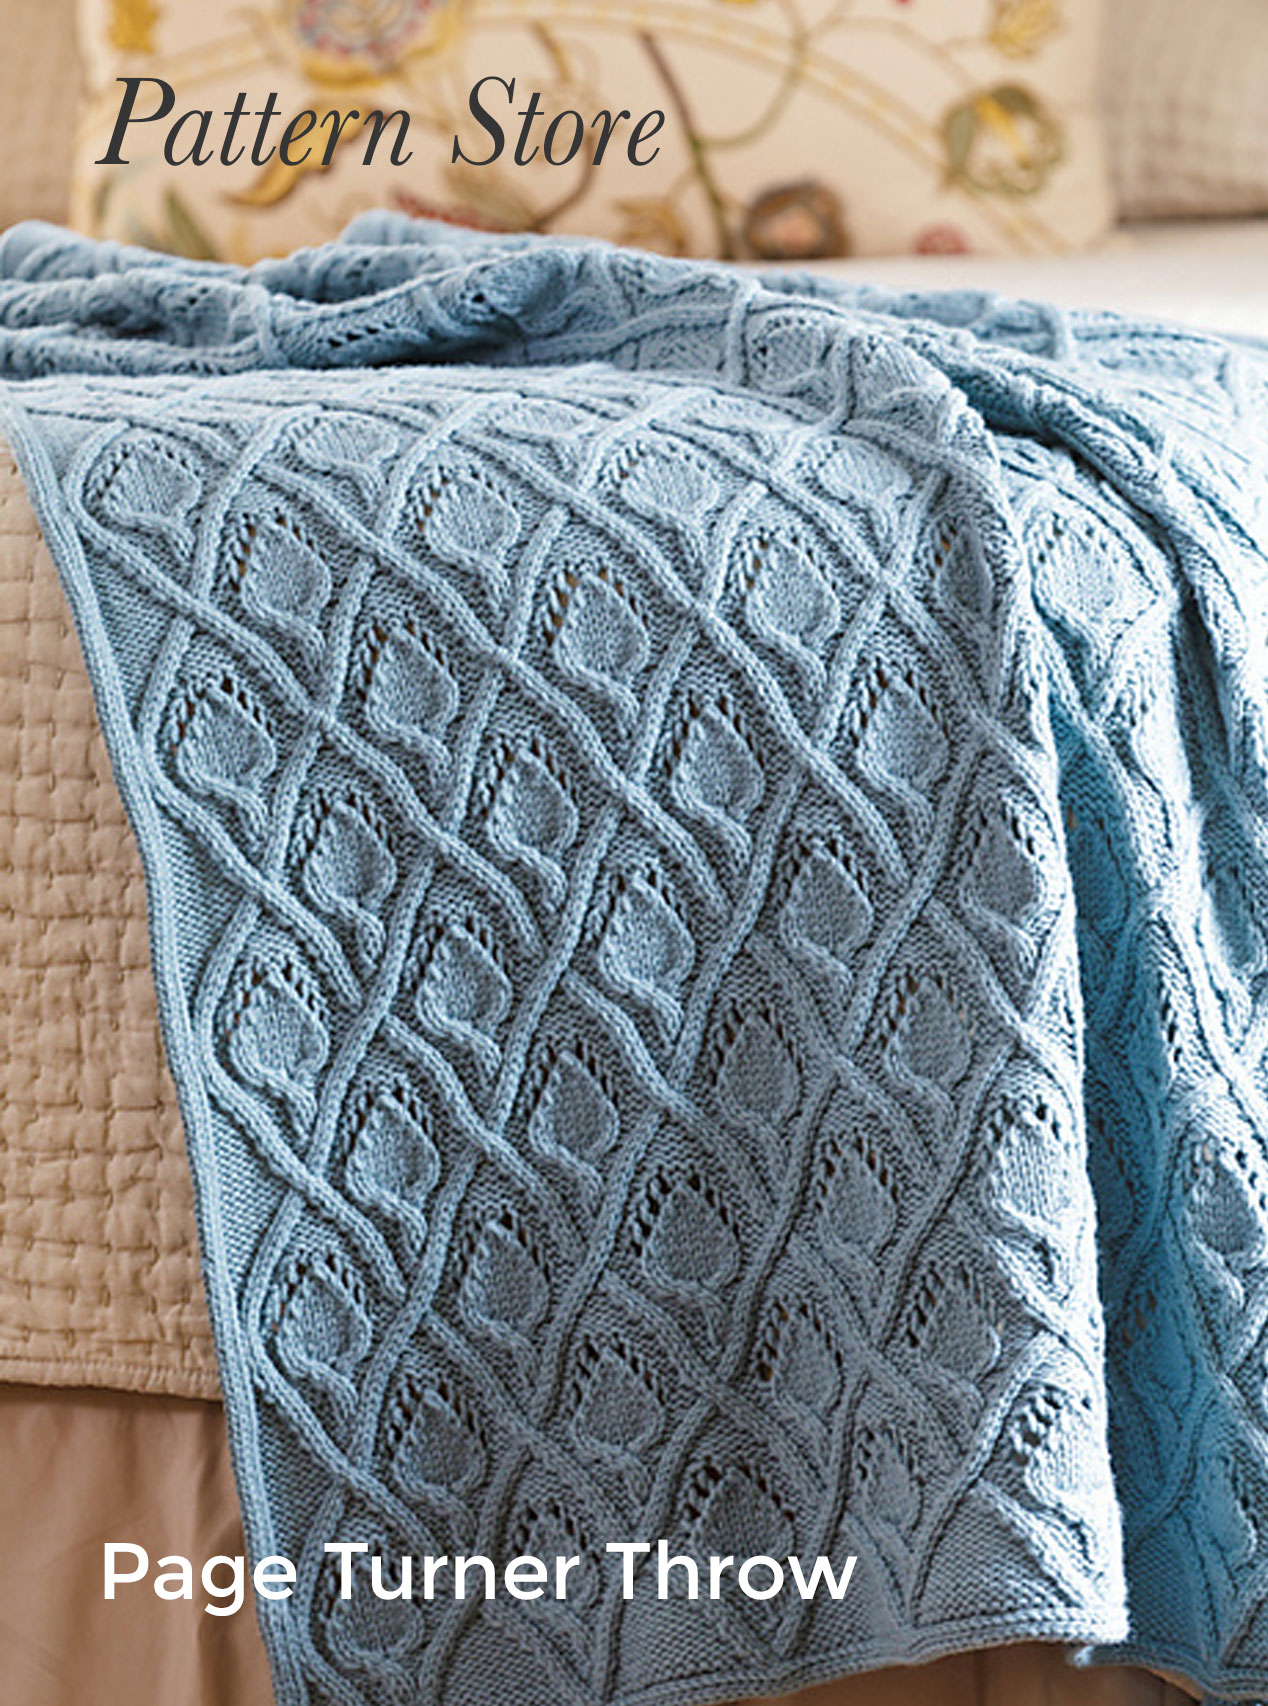 Page Turner Throw Pattern